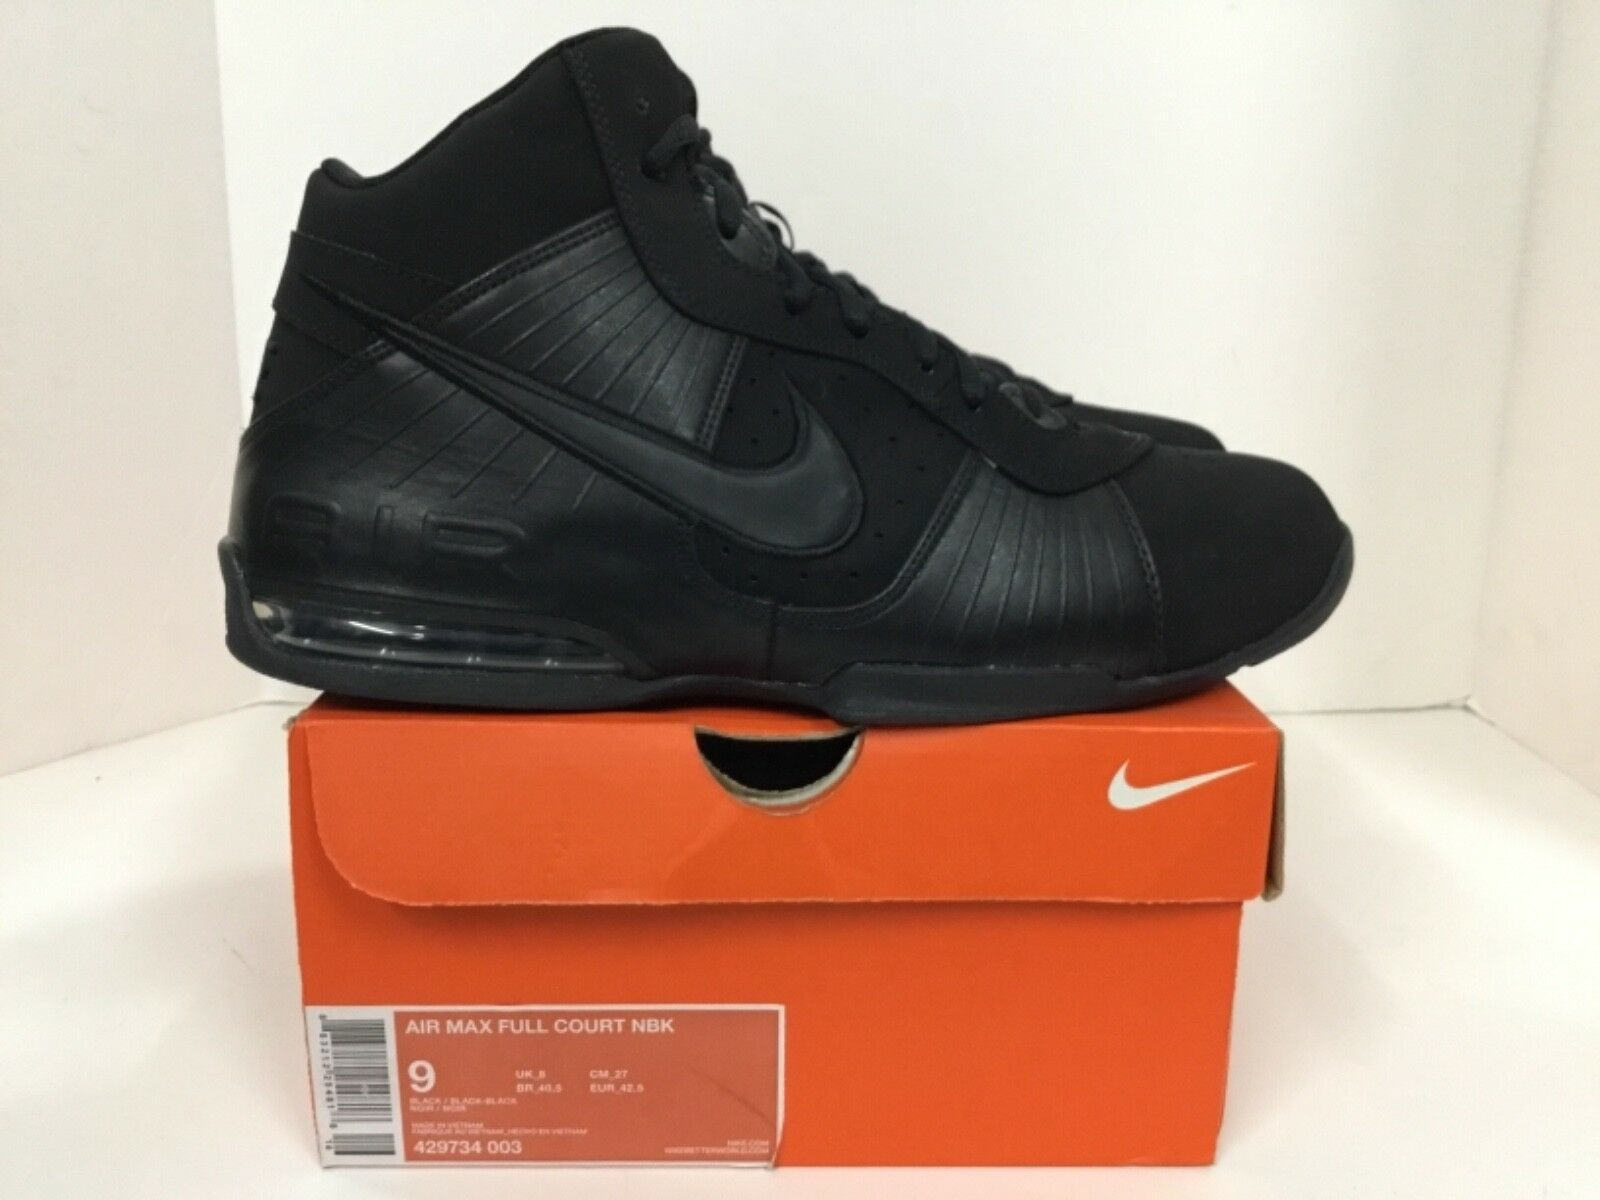 Nike Air Max Full Court Nbk StyleSize 9